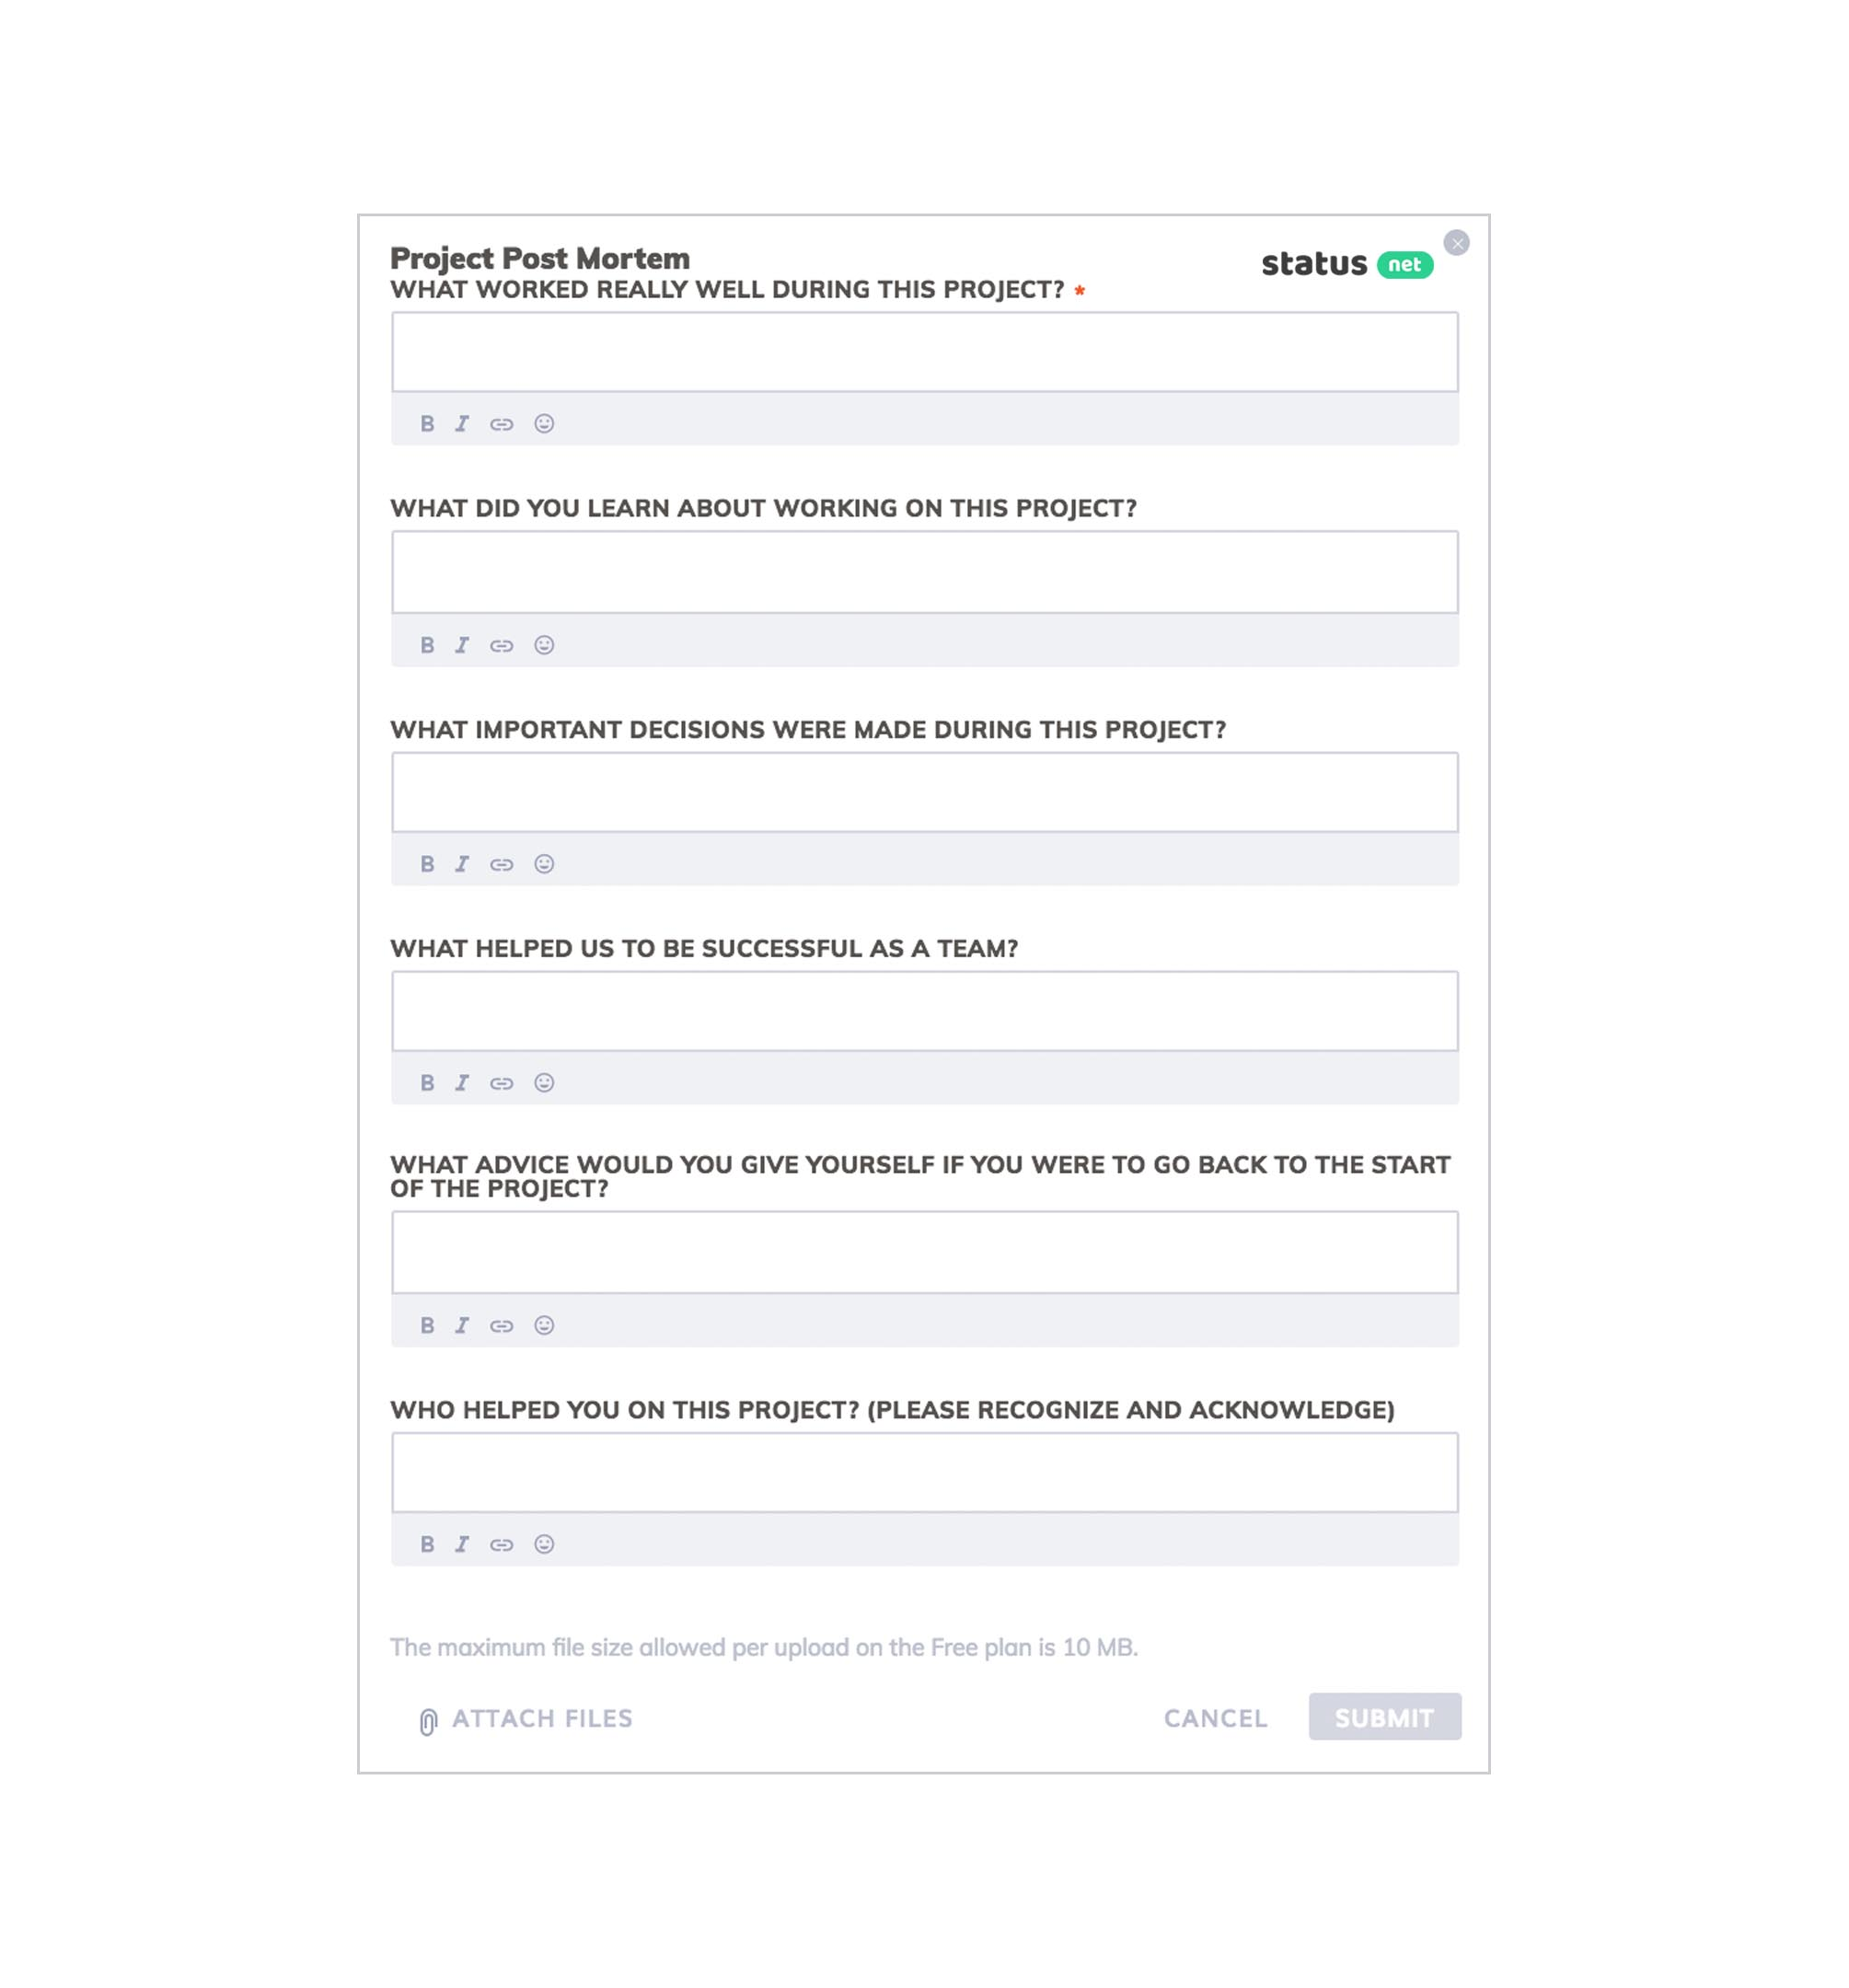 project post mortem form template